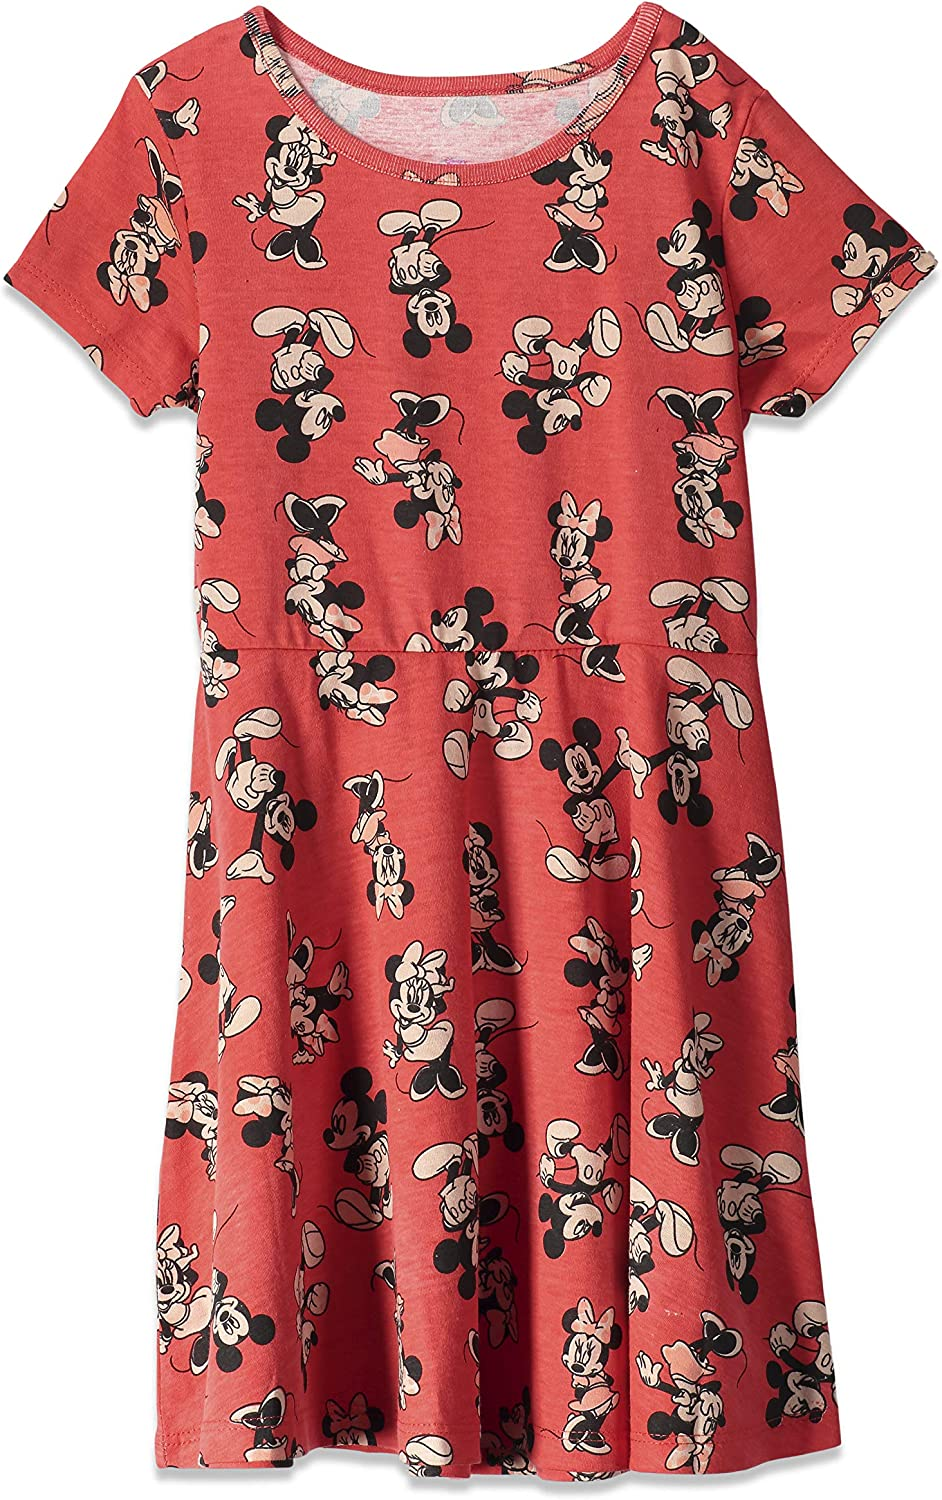 play dress for girls Minnie Mouse comfortable Minnie Mouse Dress 2 varieties modest